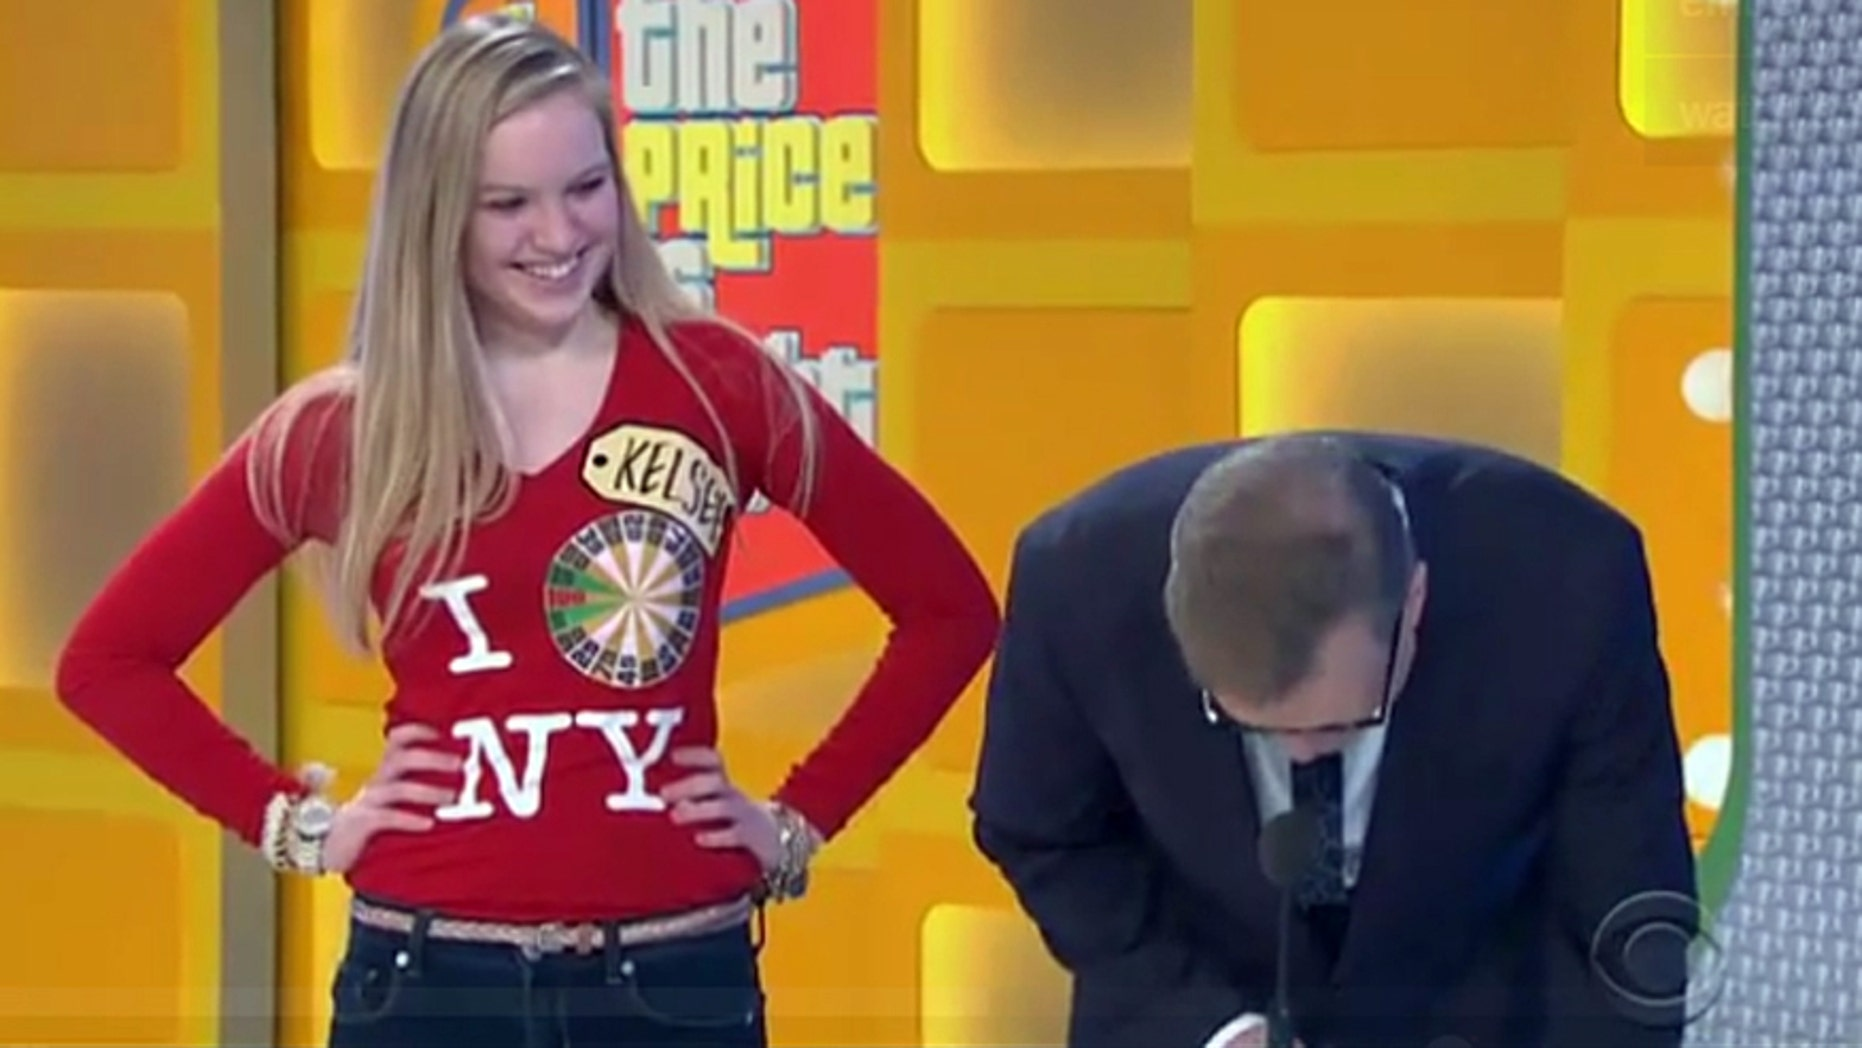 """""""The Price is Right"""" host Drew Carey doubles over in laughter after New York City contestant Kelsey answers his question."""